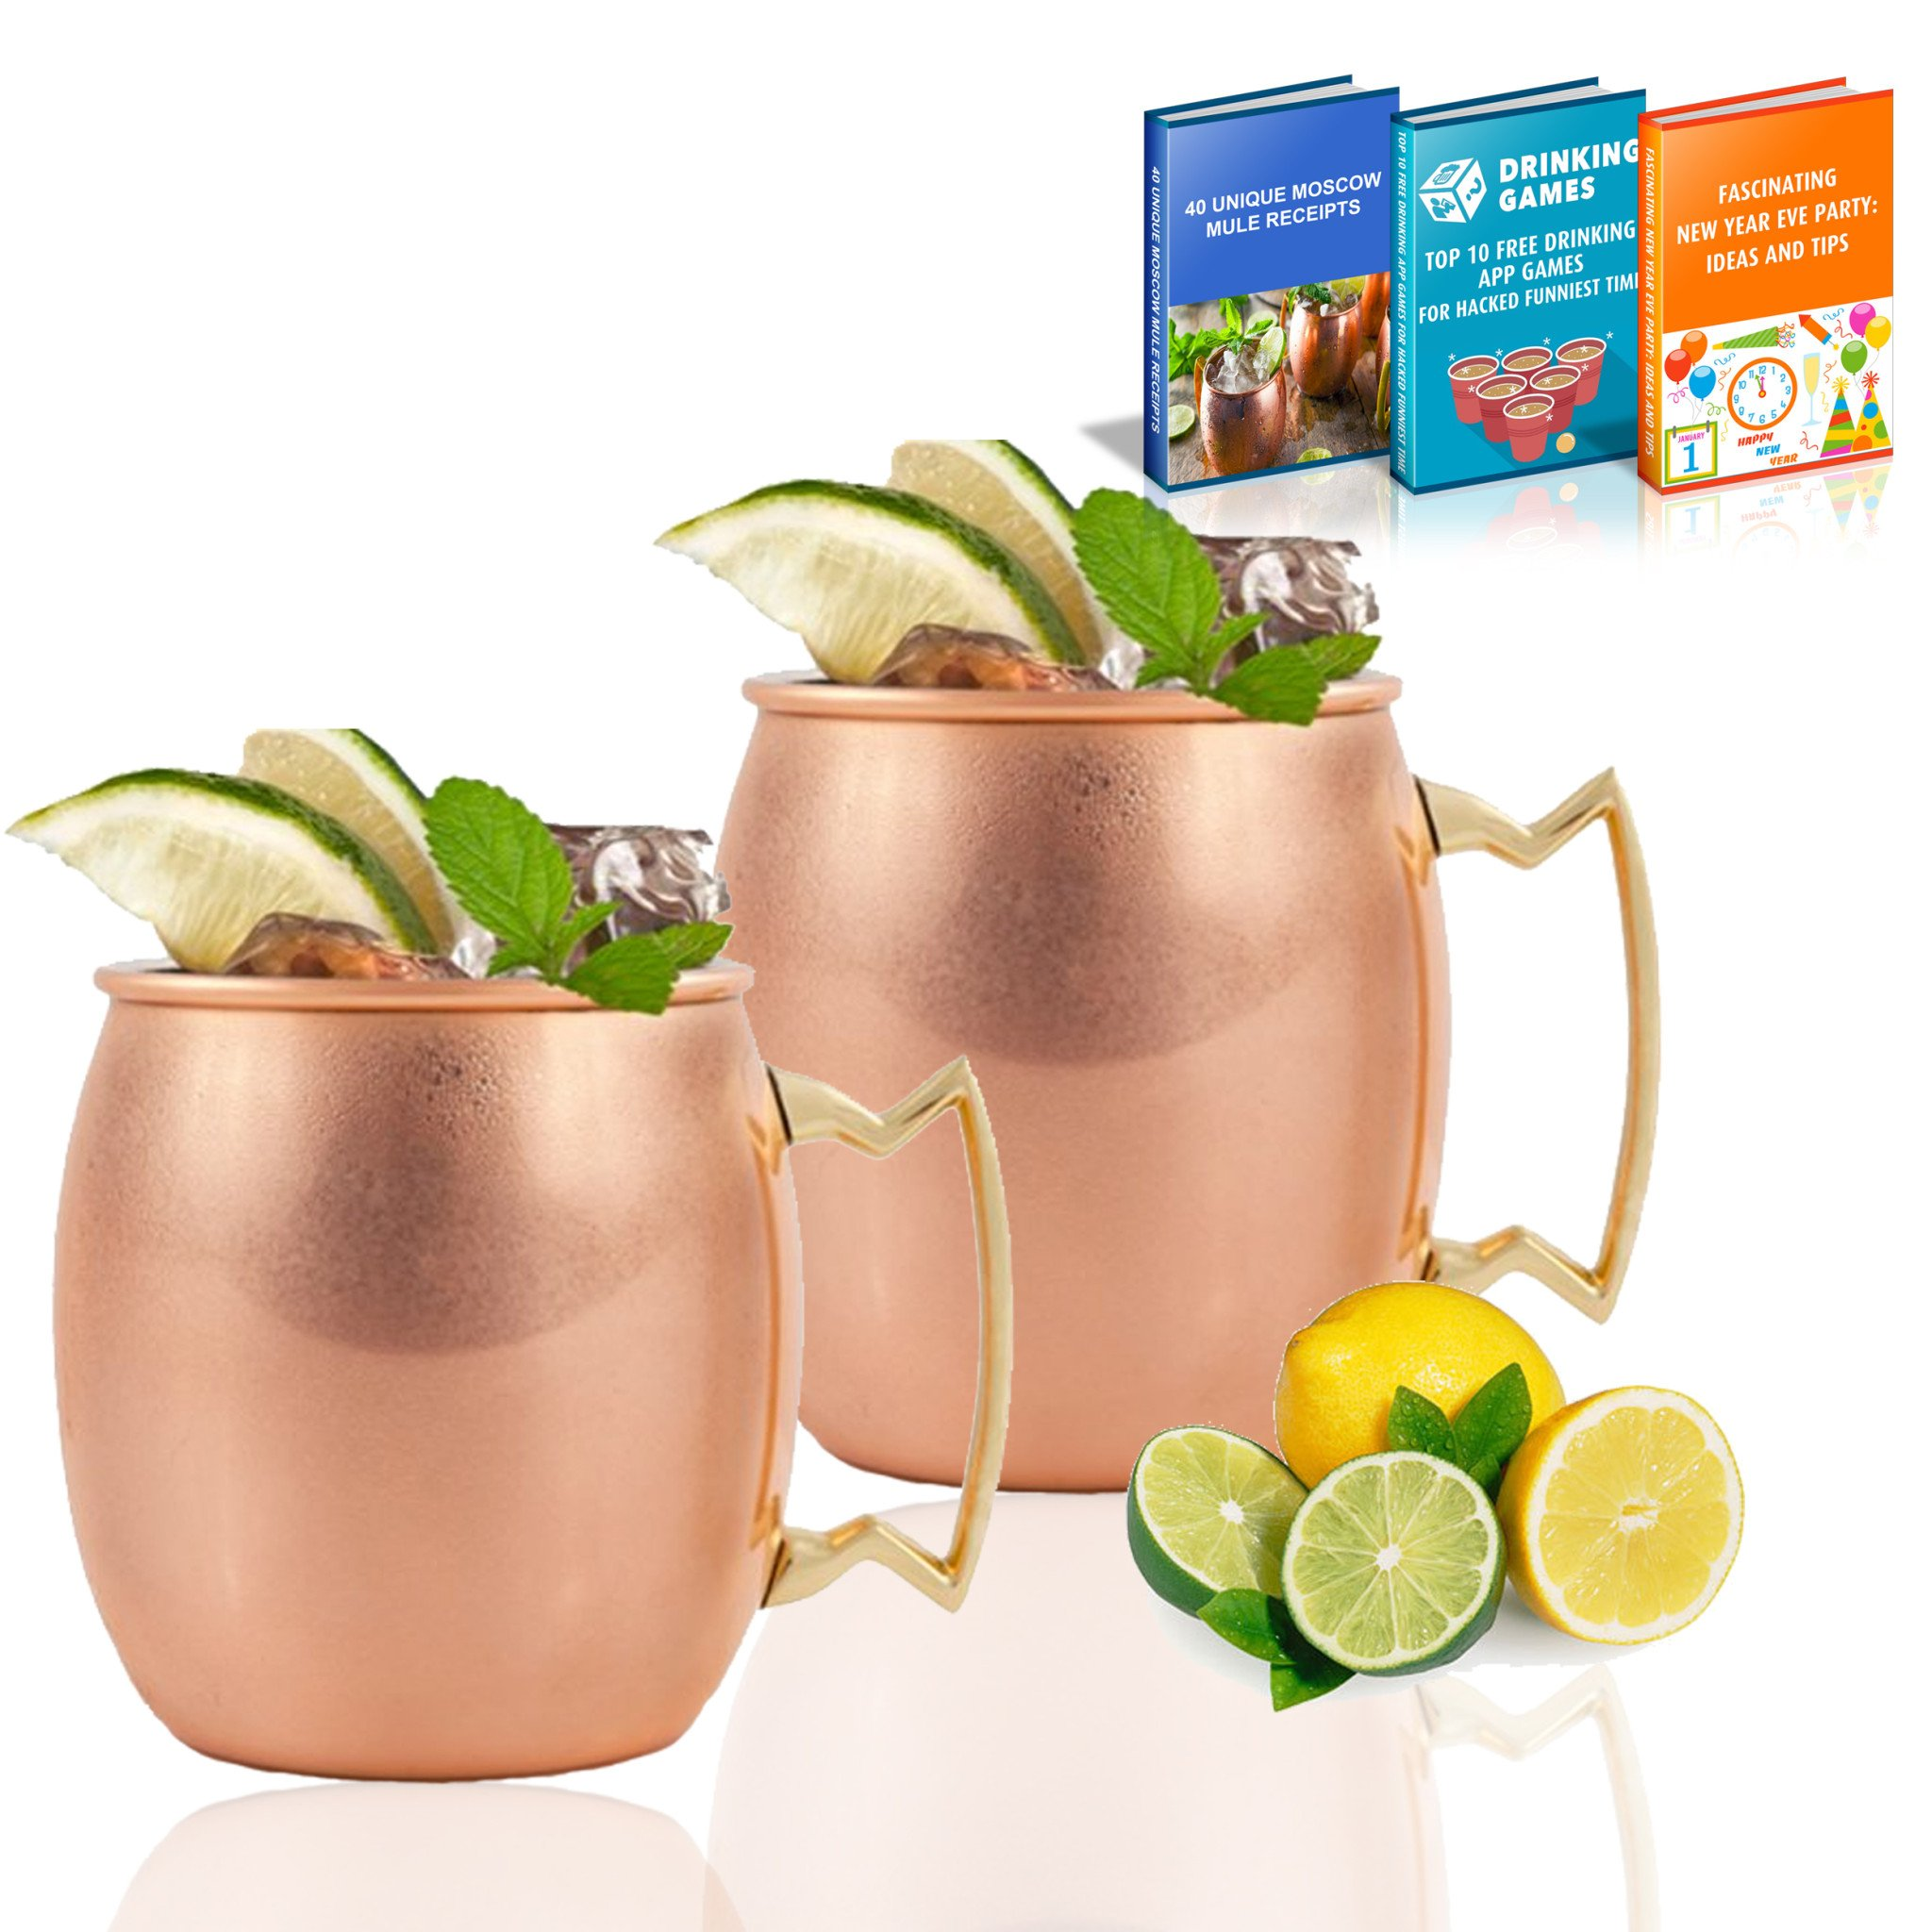 Premium Moscow Mule Copper Mugs - Stainless Steel Moscow Mule Cups - Highest Quality Set of 2 Moscow Mule Mugs - Suitable for Party / Friend & Family Meeting with 3 Bonus Guide Ebook